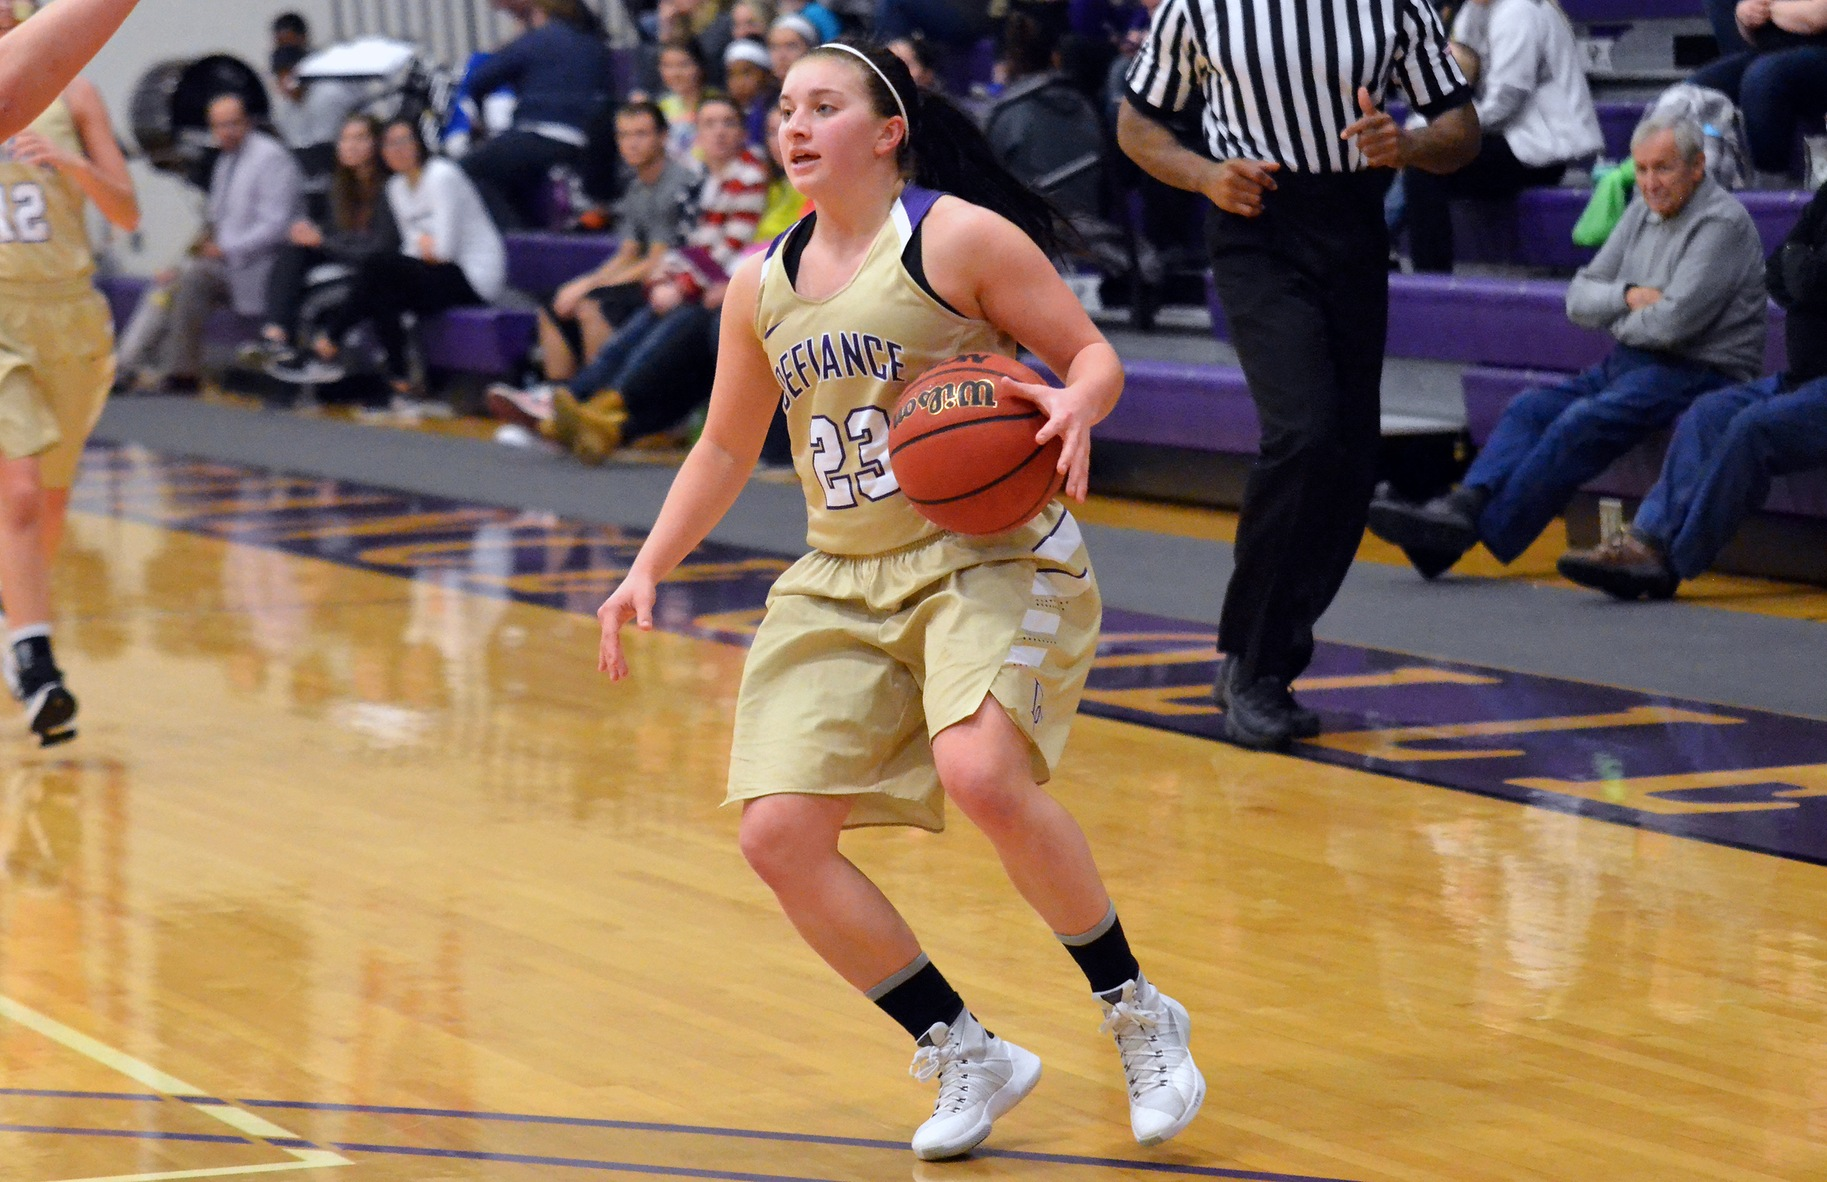 Defiance Downed In 75-47 Loss to Albion